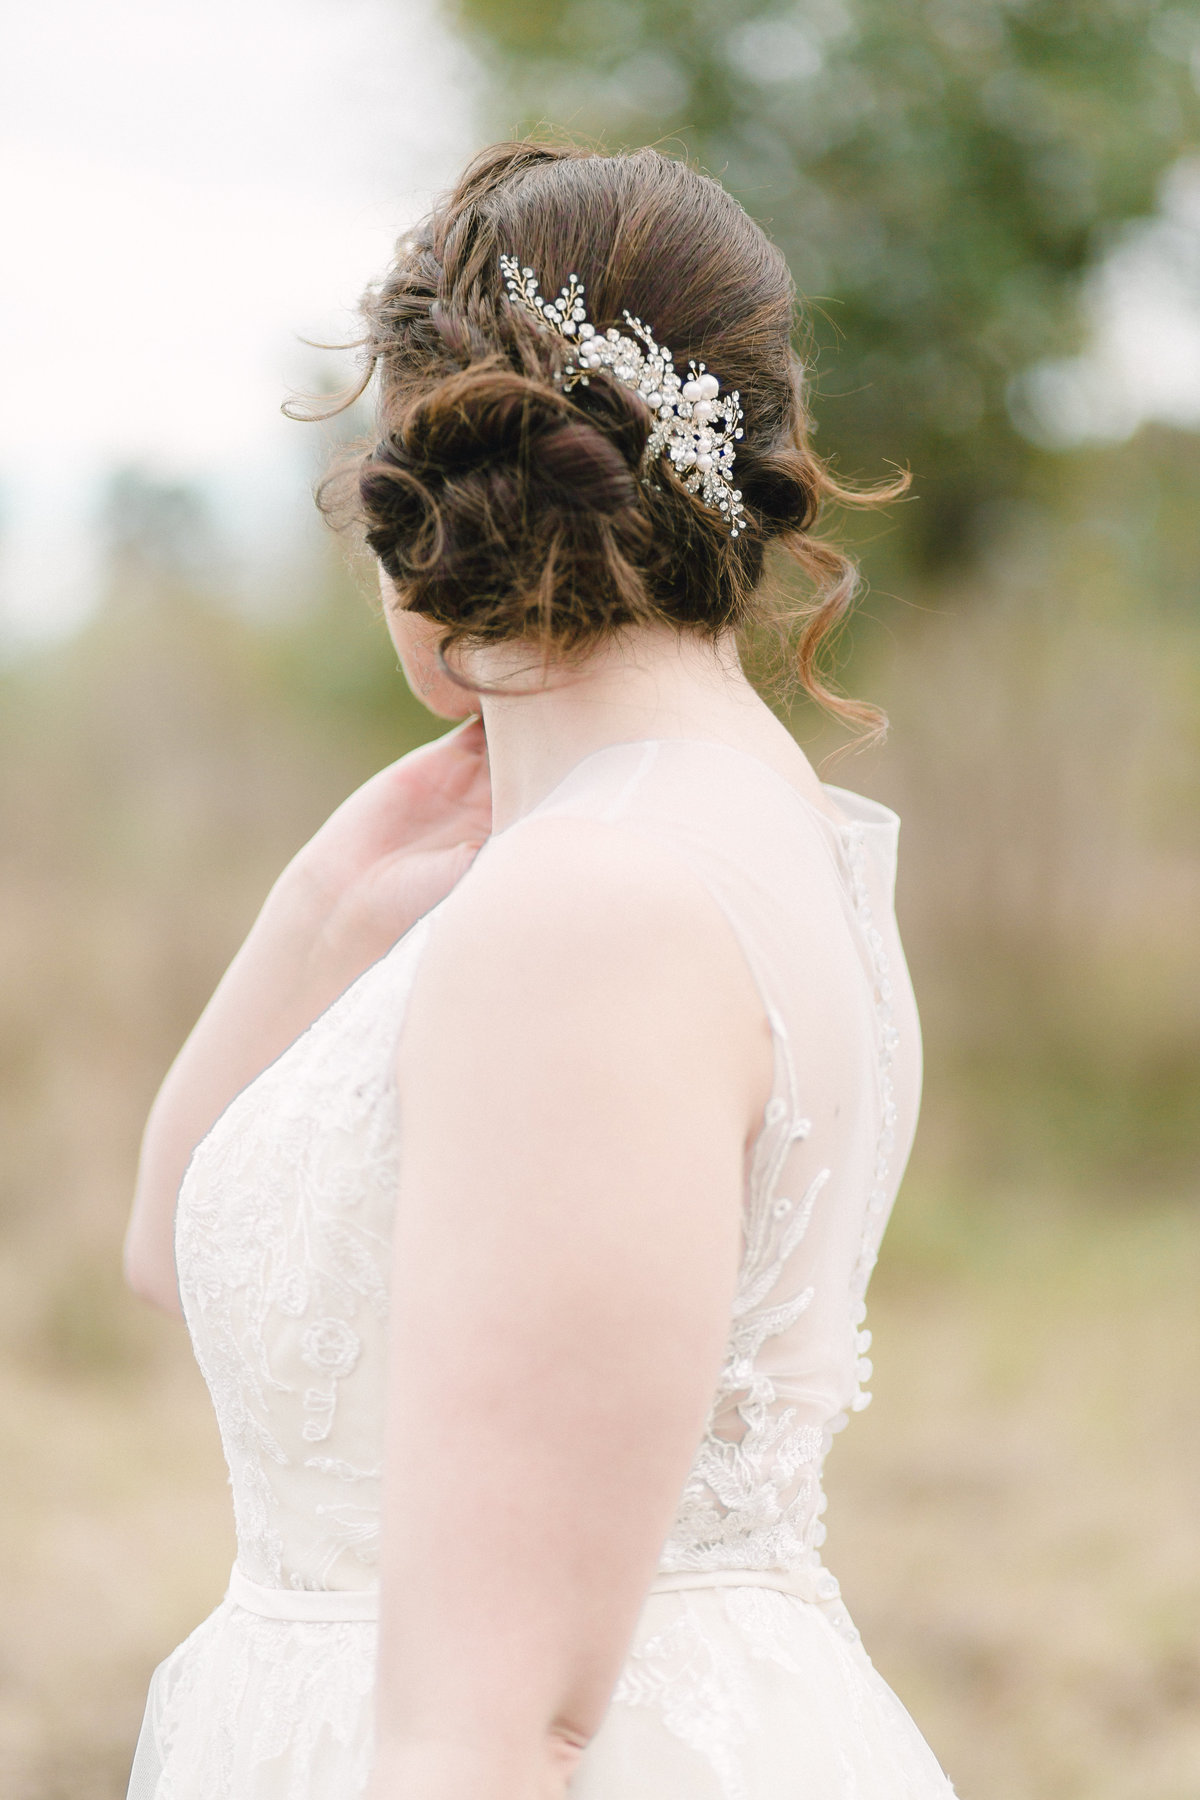 The-woodlands-bridal-session-alicia-yarrish-photography-41